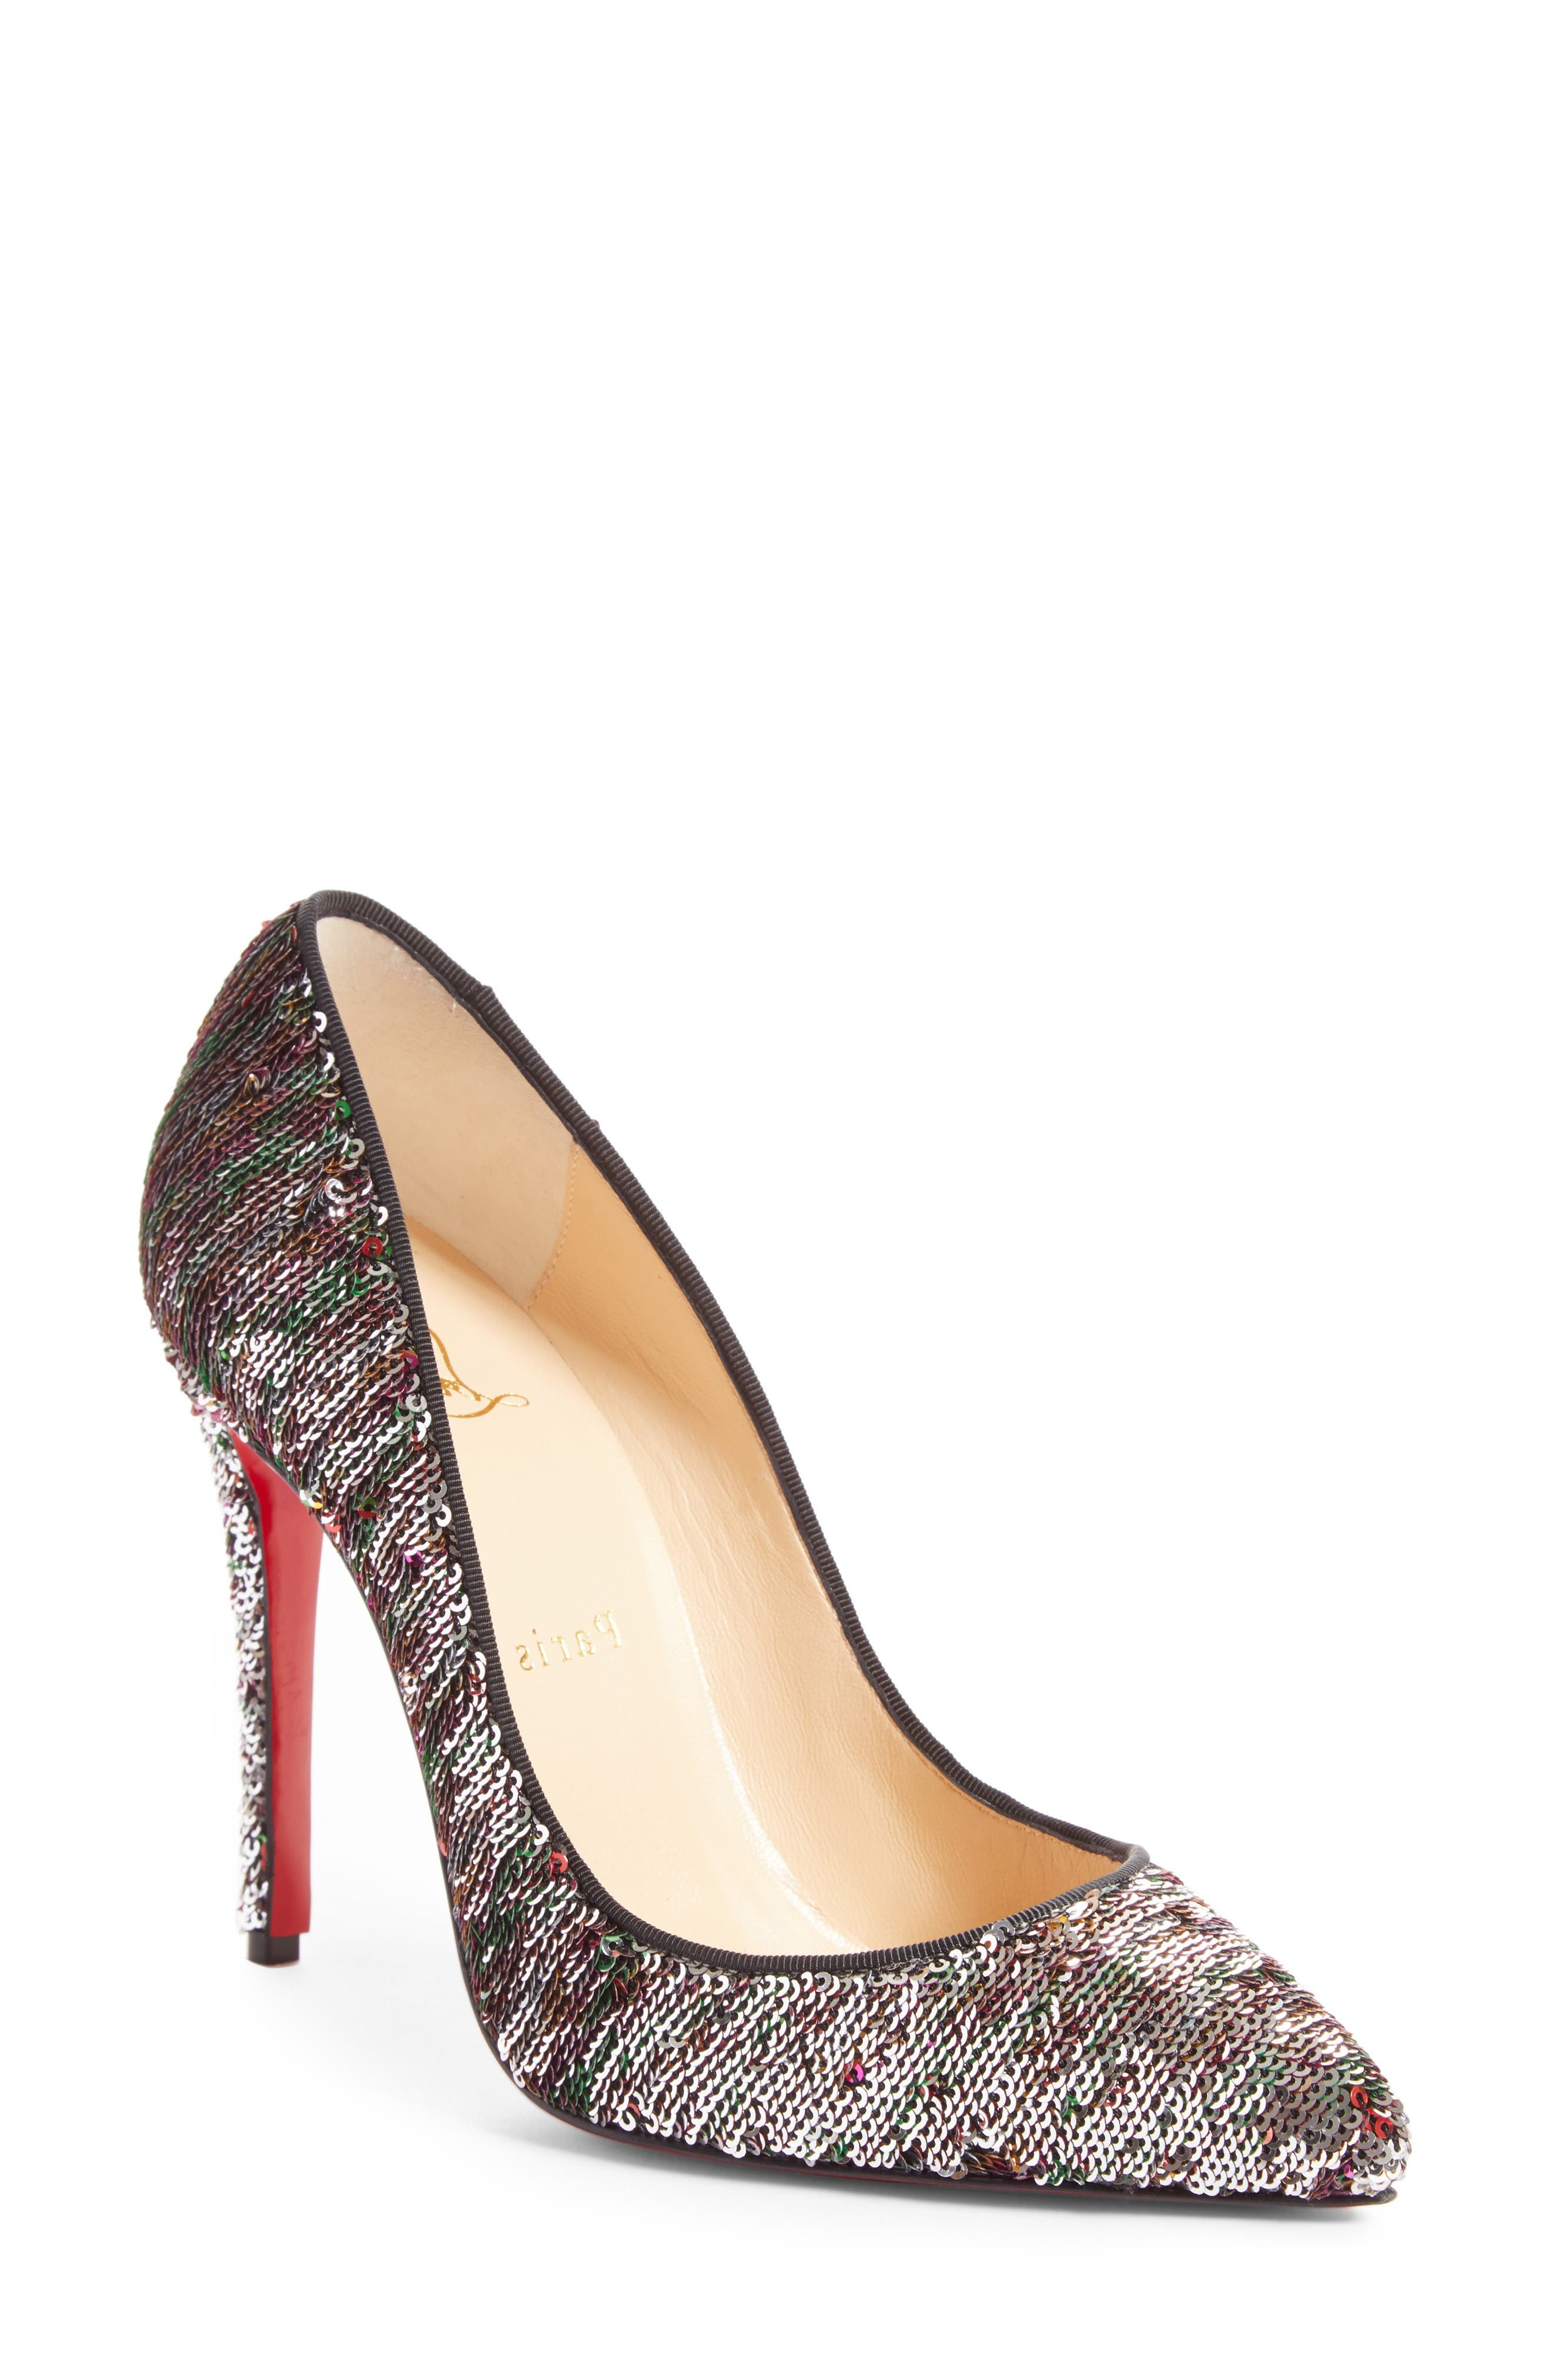 Christian Louboutin Pigalle Follies Sequin Pointy Toe Pump (Women)